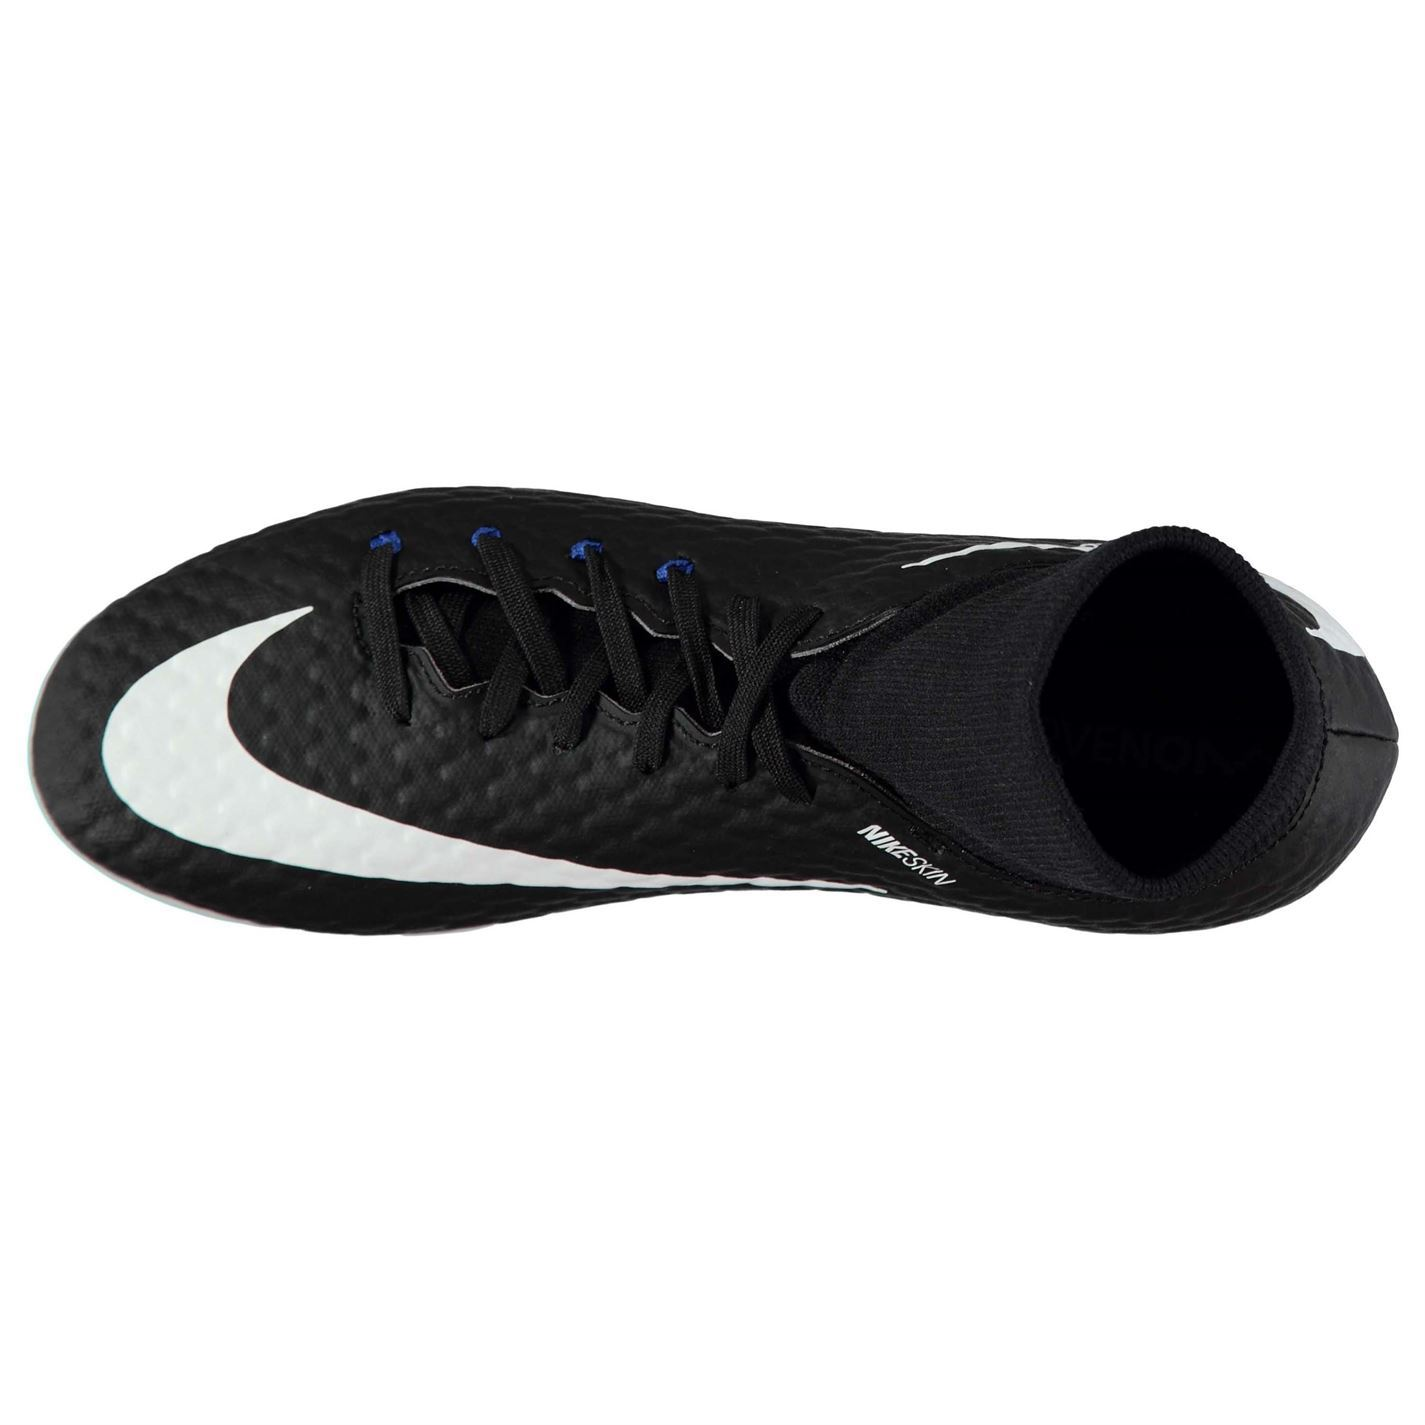 reputable site ffa1b 0f951 ... Nike HyperPhelnDF FG Firm Ground Juniors Black White Royal Soccer Shoes